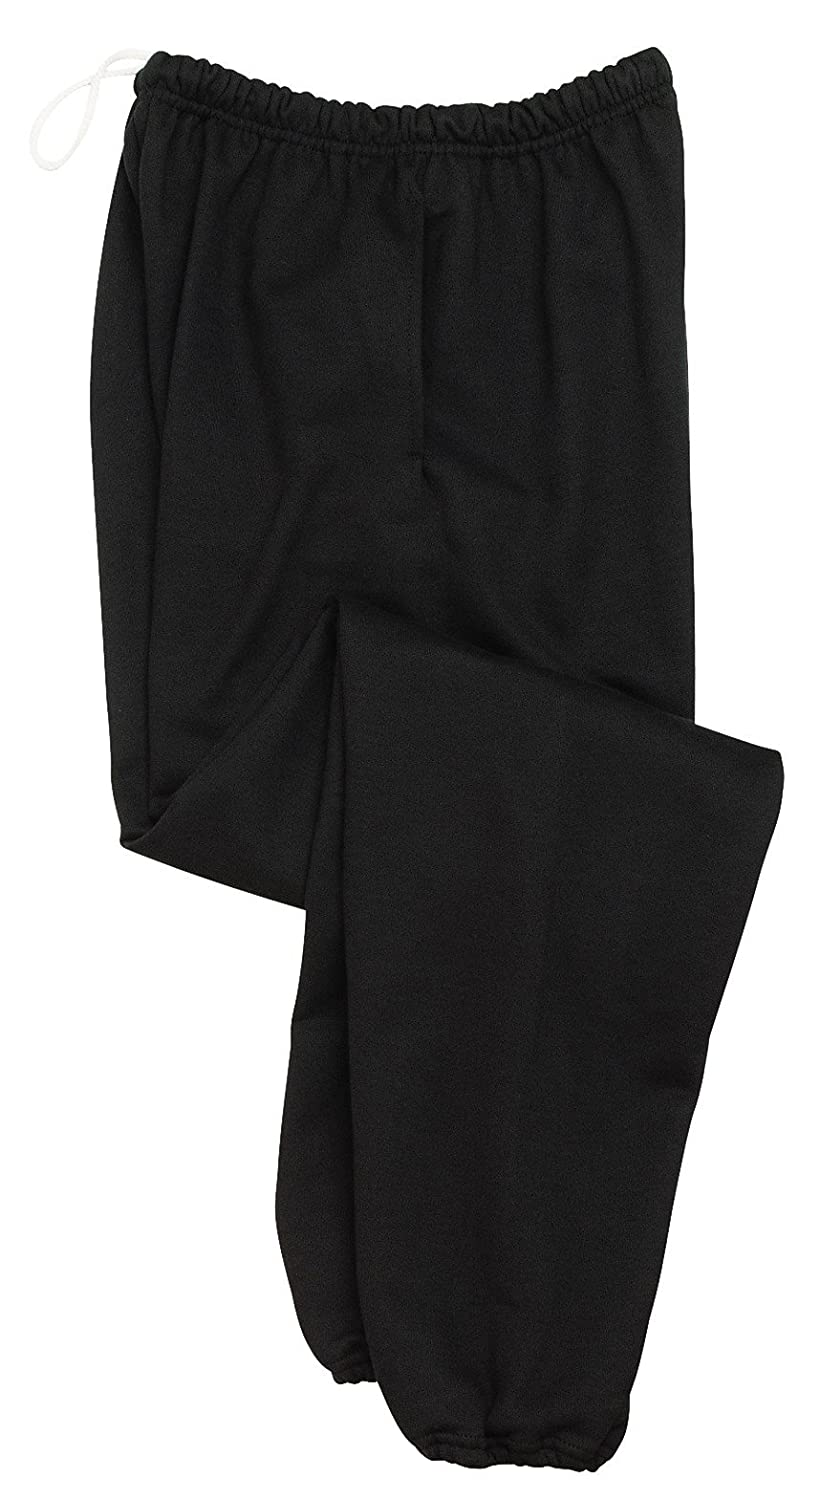 Noir  3XL Jerzees Hommes's Super Sweatpants With Pocket